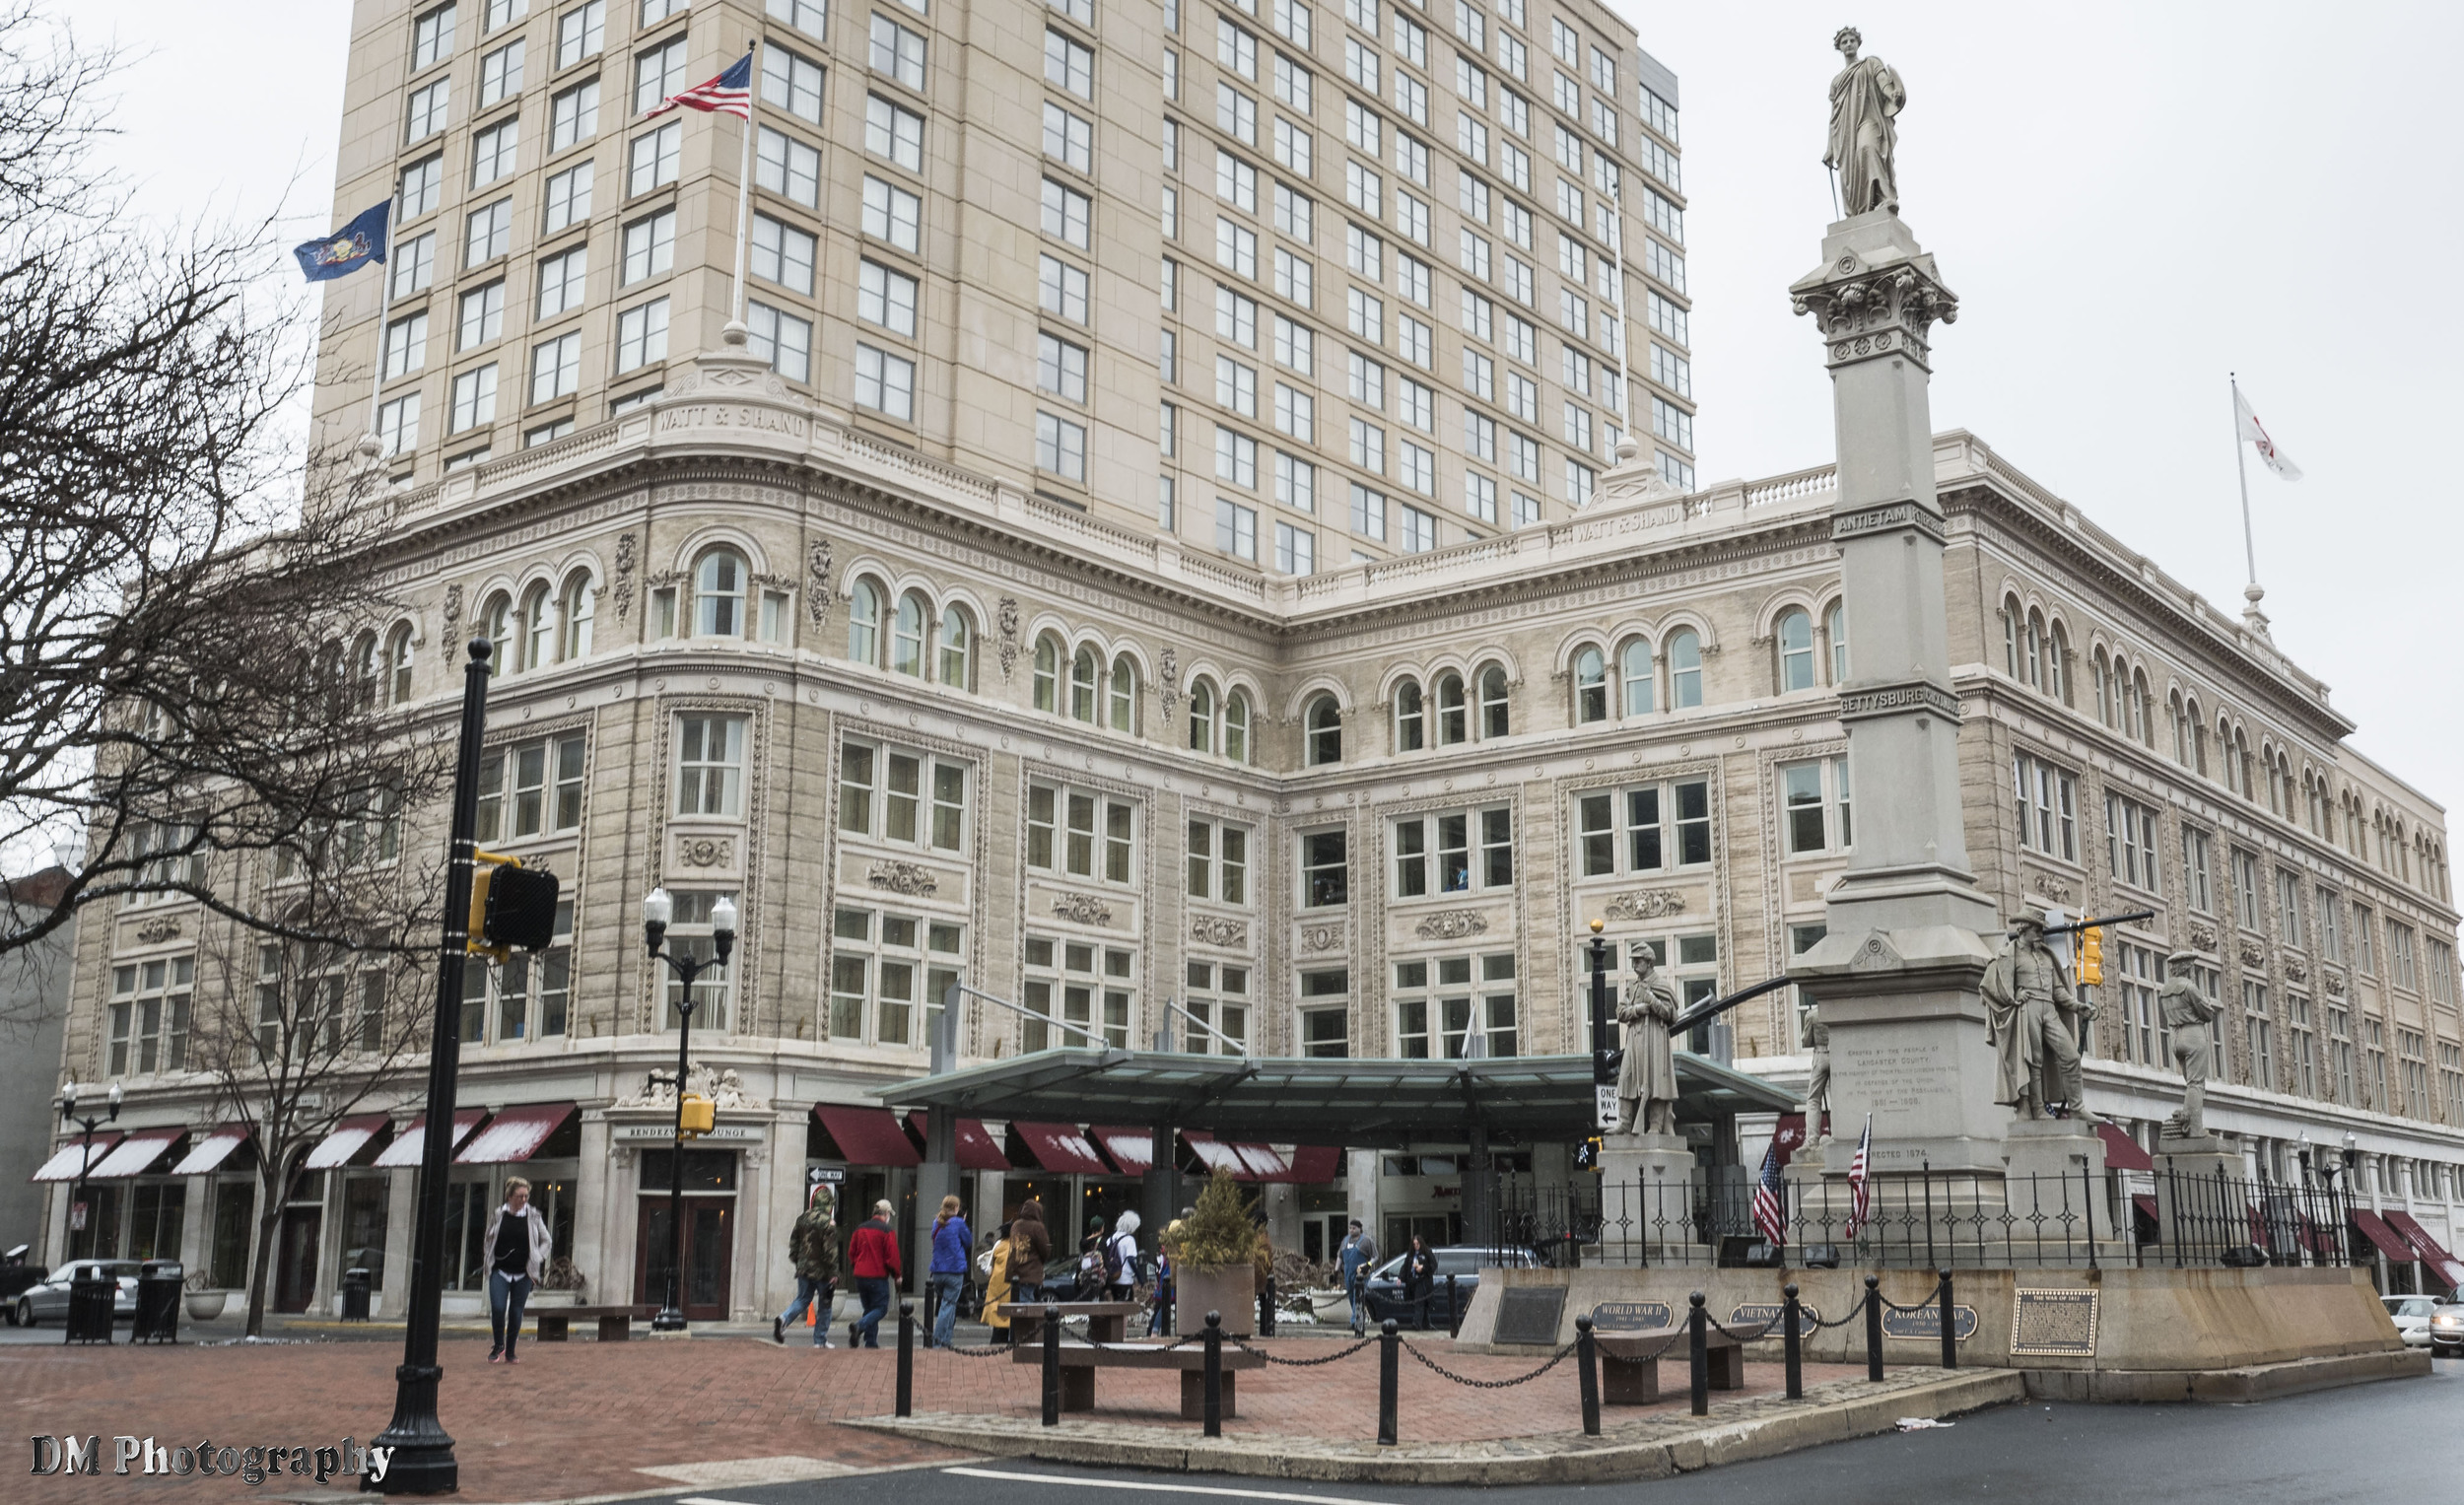 The Lancaster County Convention Center at Penn Square